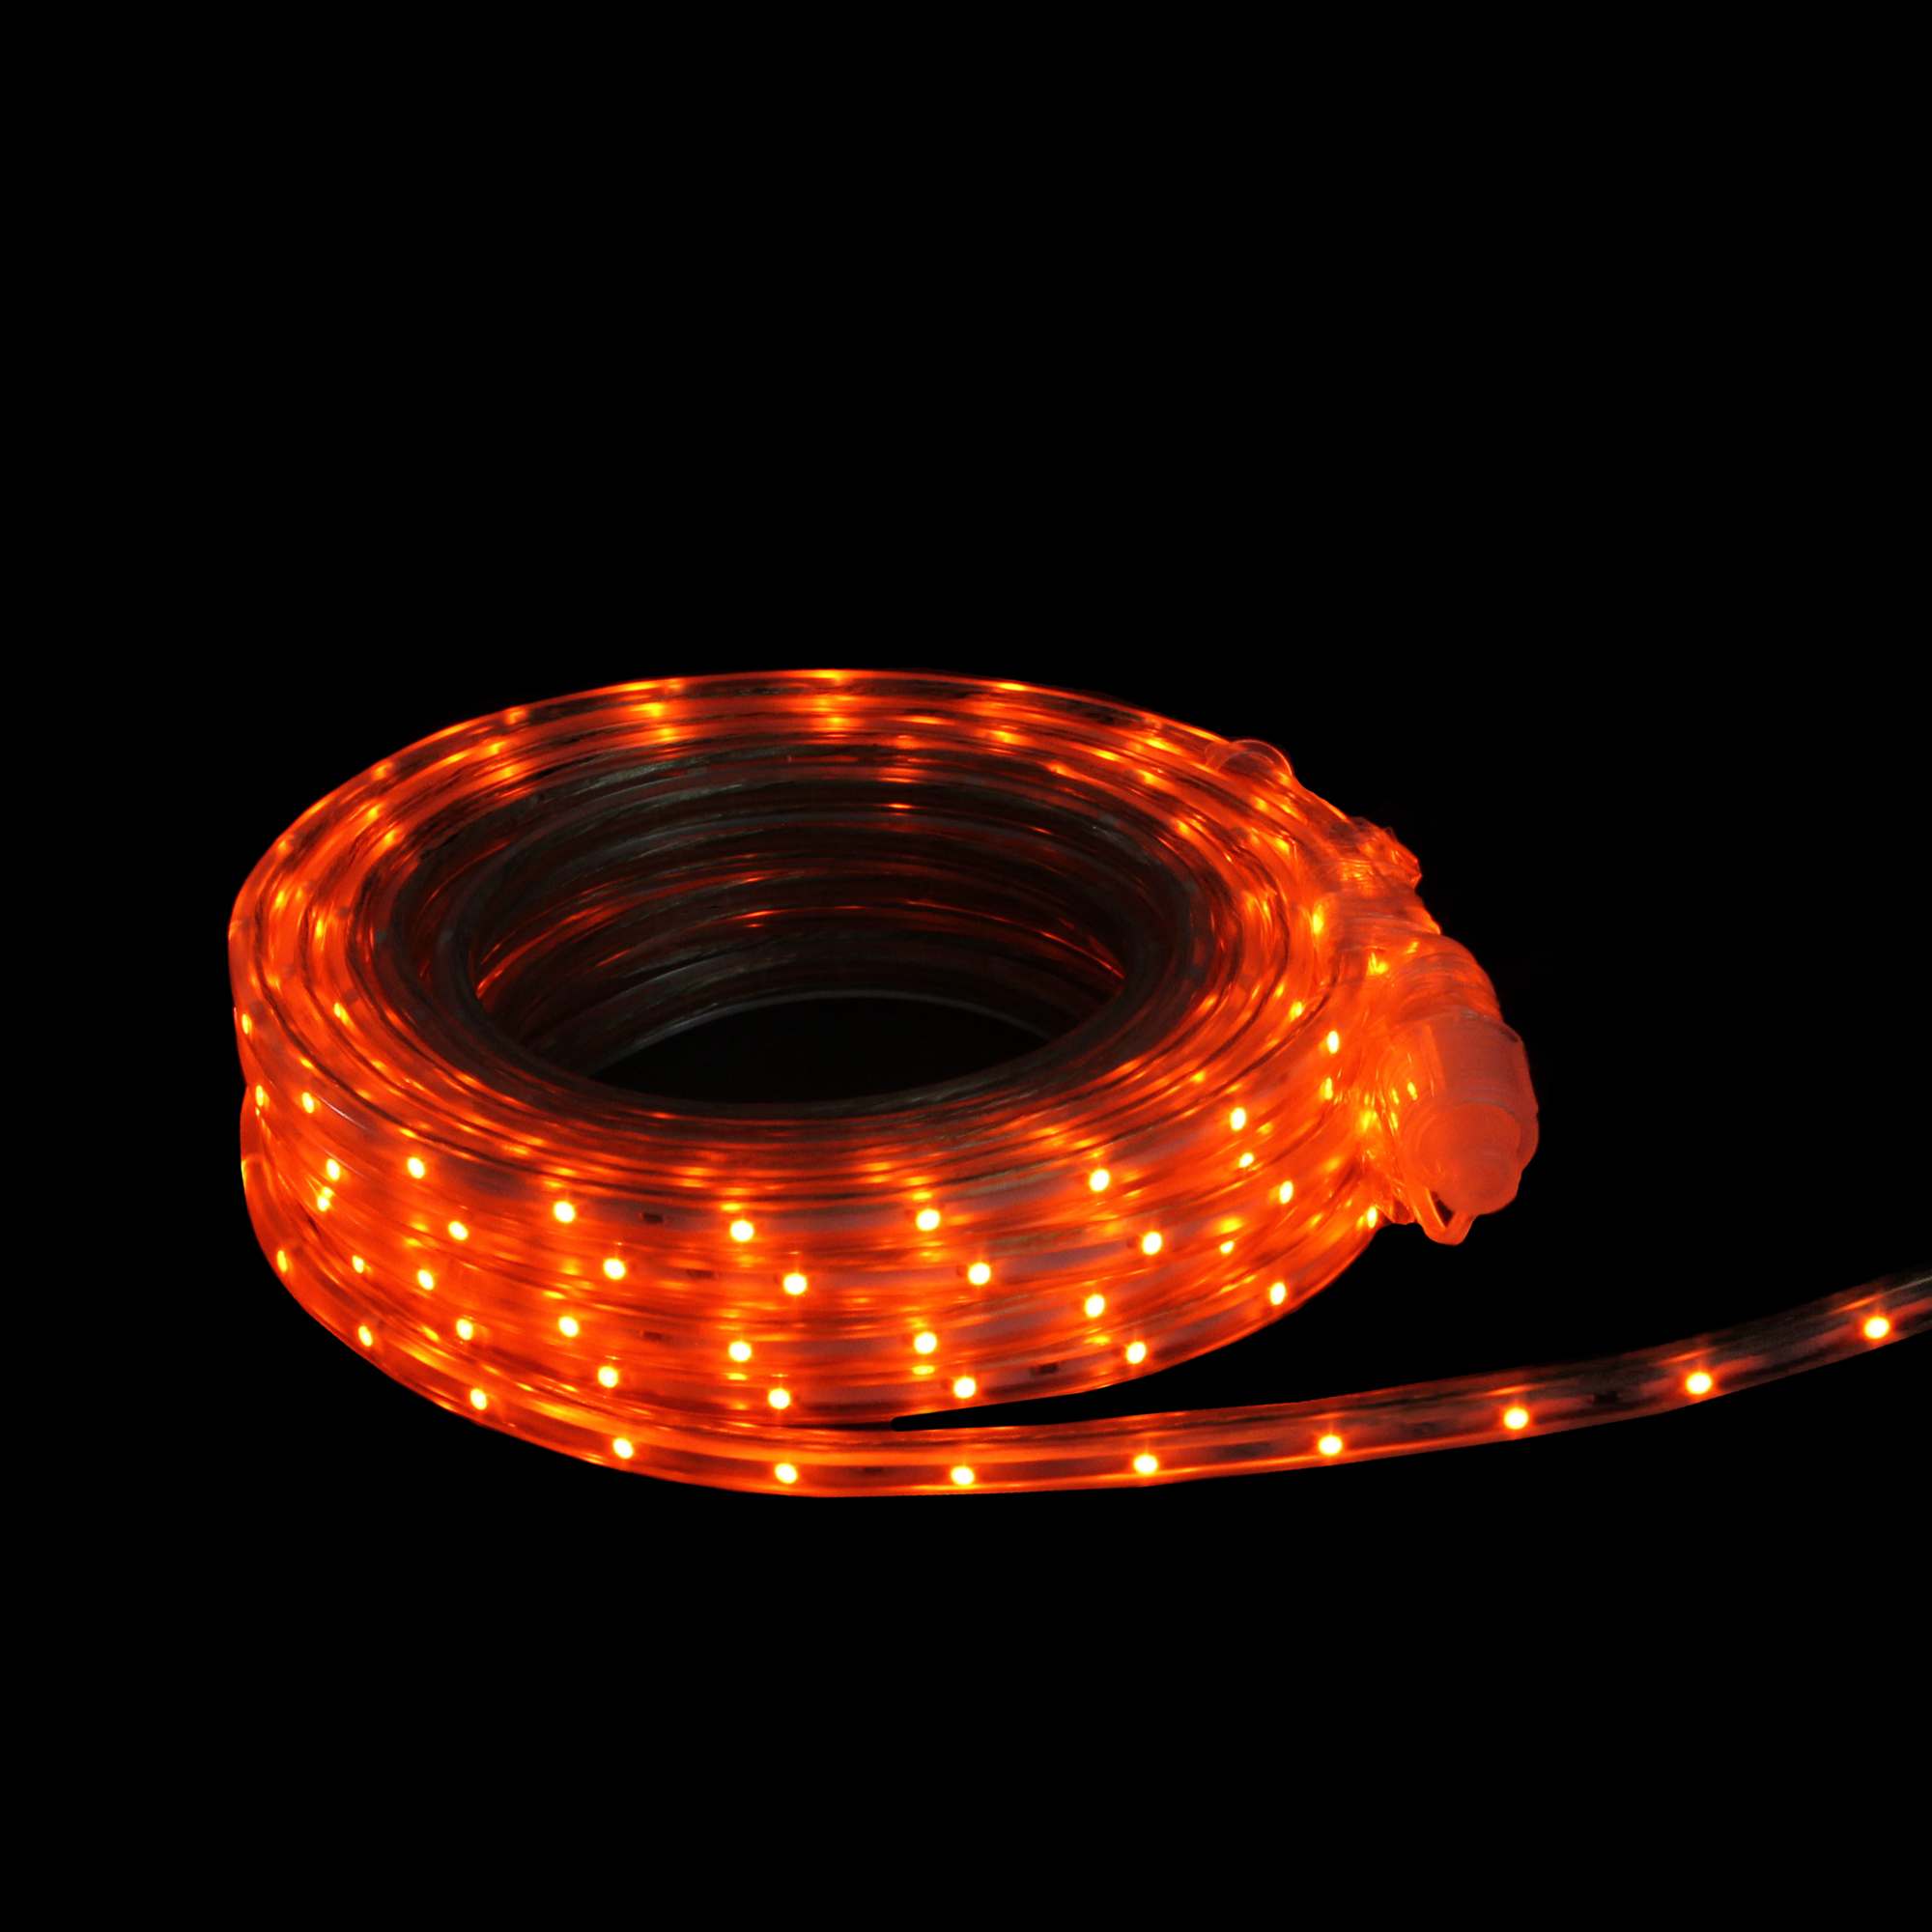 Details About Cc Christmas Decor 30 Orange Led Indoor Outdoor Christmas Linear Tape Lighting